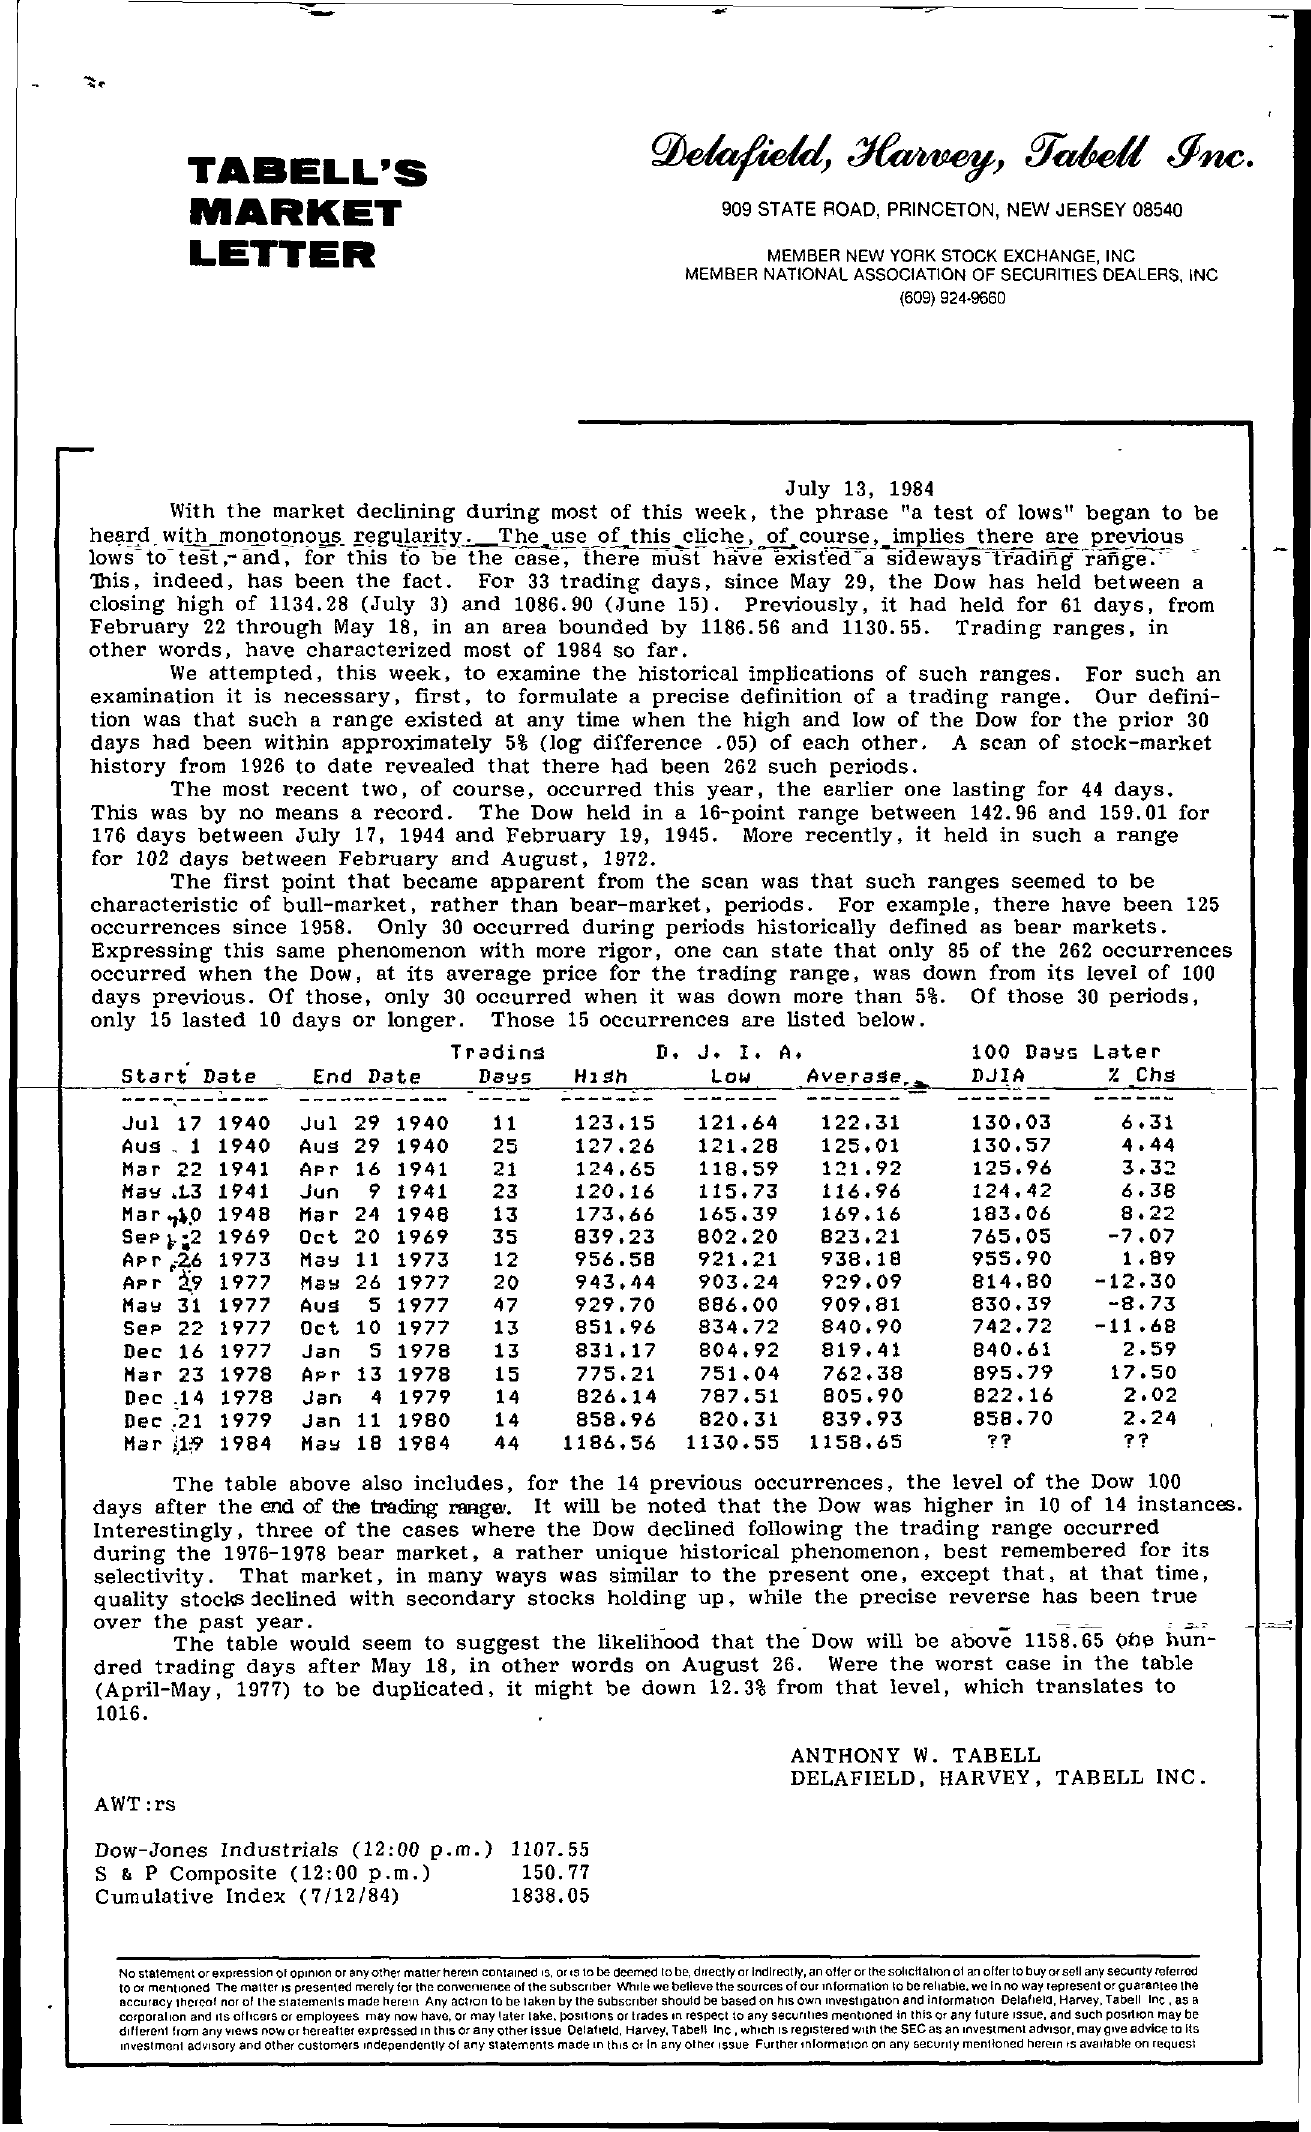 Tabell's Market Letter - July 13, 1984